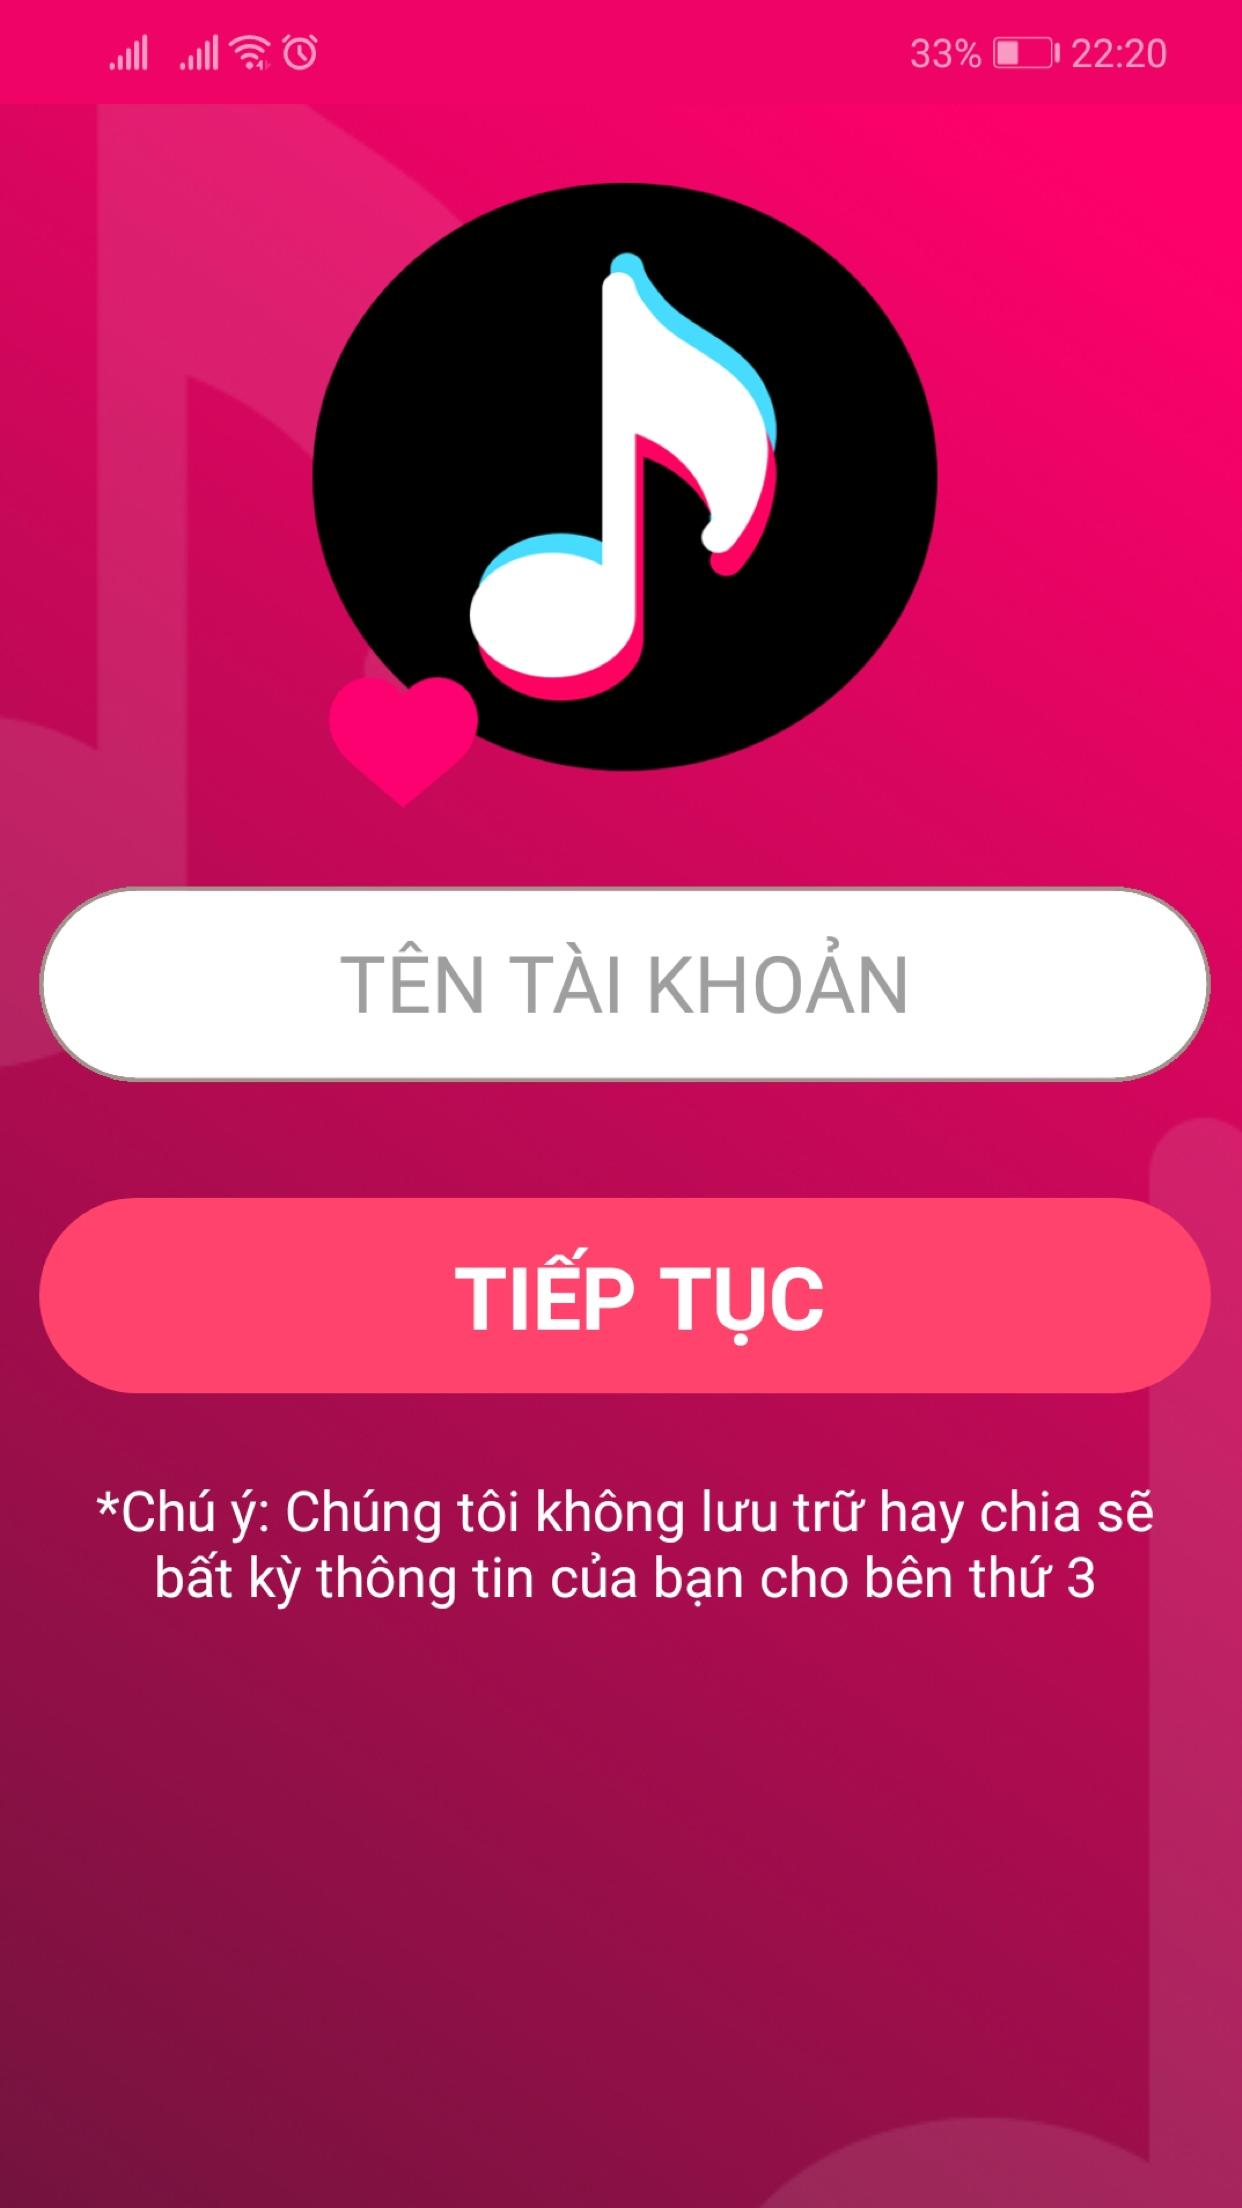 tiktok hack tool apk download